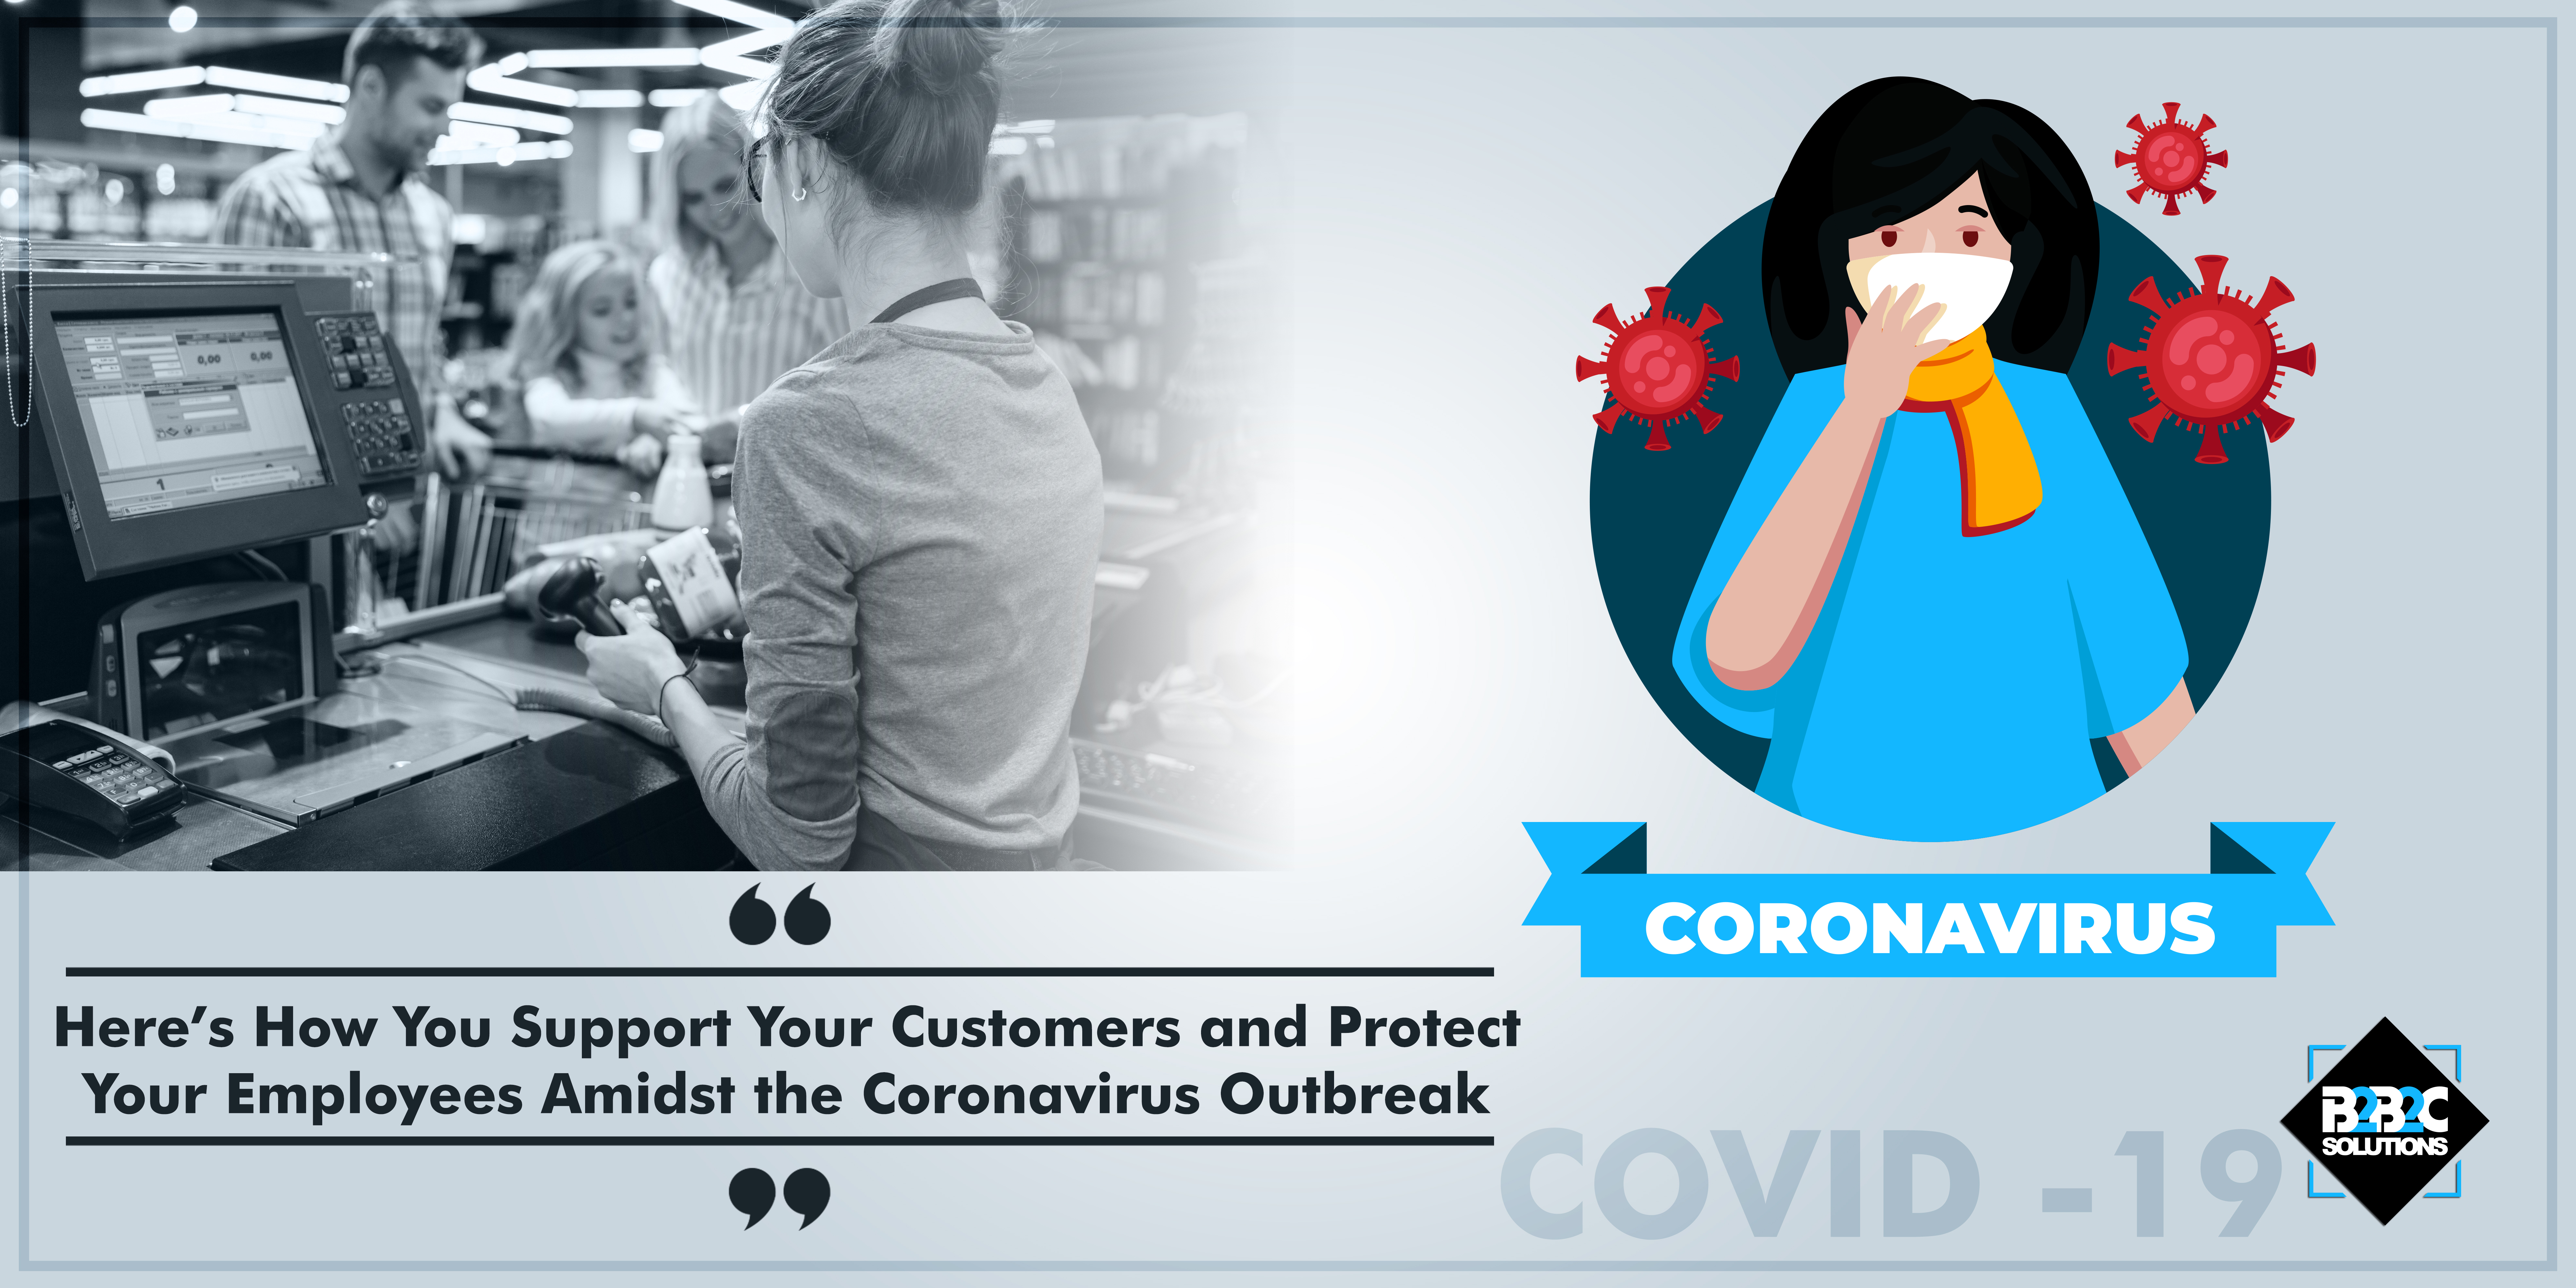 Here's How You Support Your Customers and Protect Your Employees Amidst the Coronavirus Outbreak